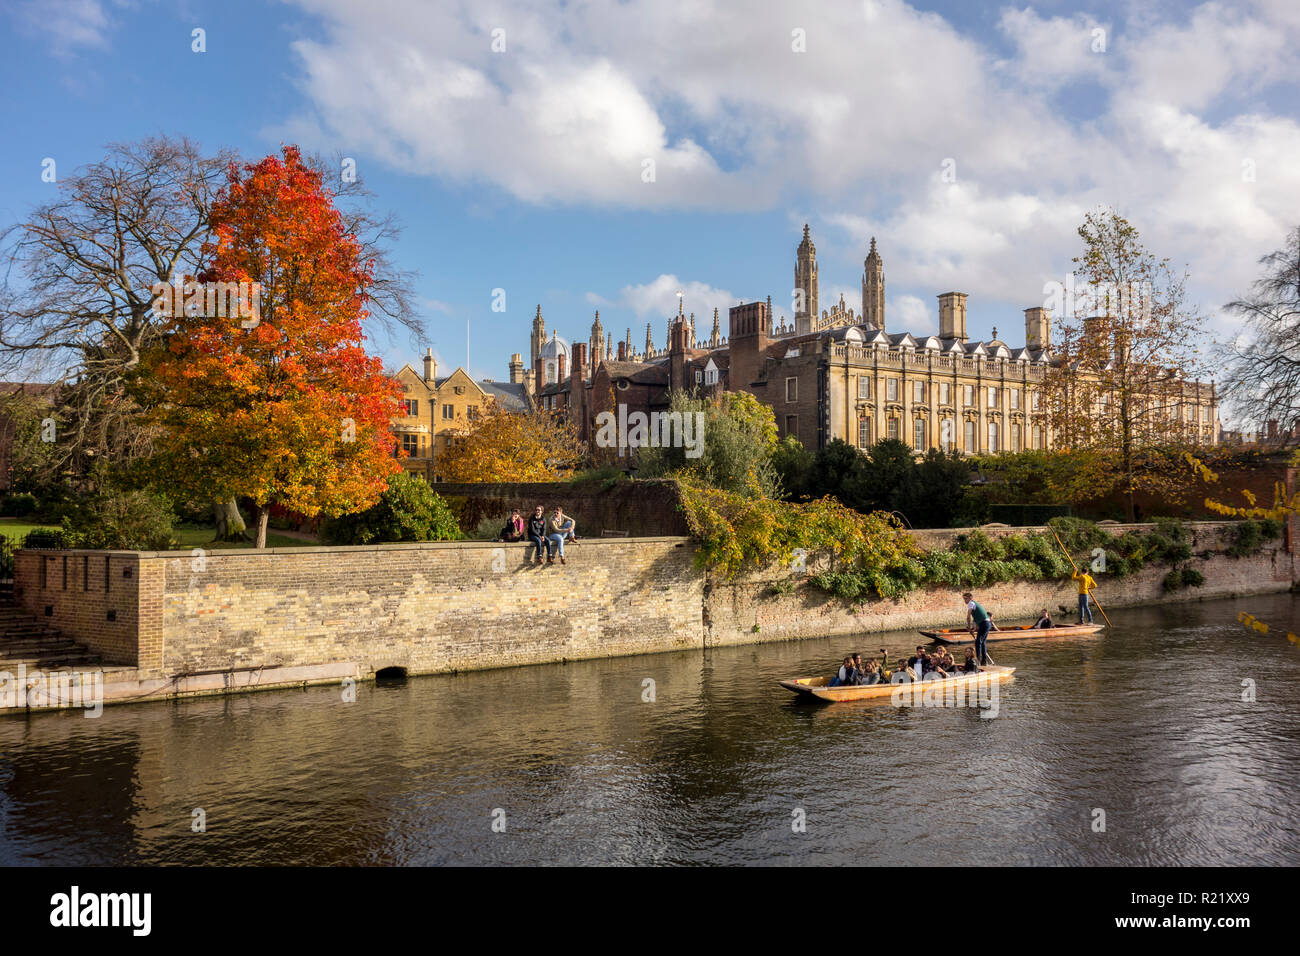 Autumn view of Clare College and punts on the River Cam, Cambridge, UK - Stock Image